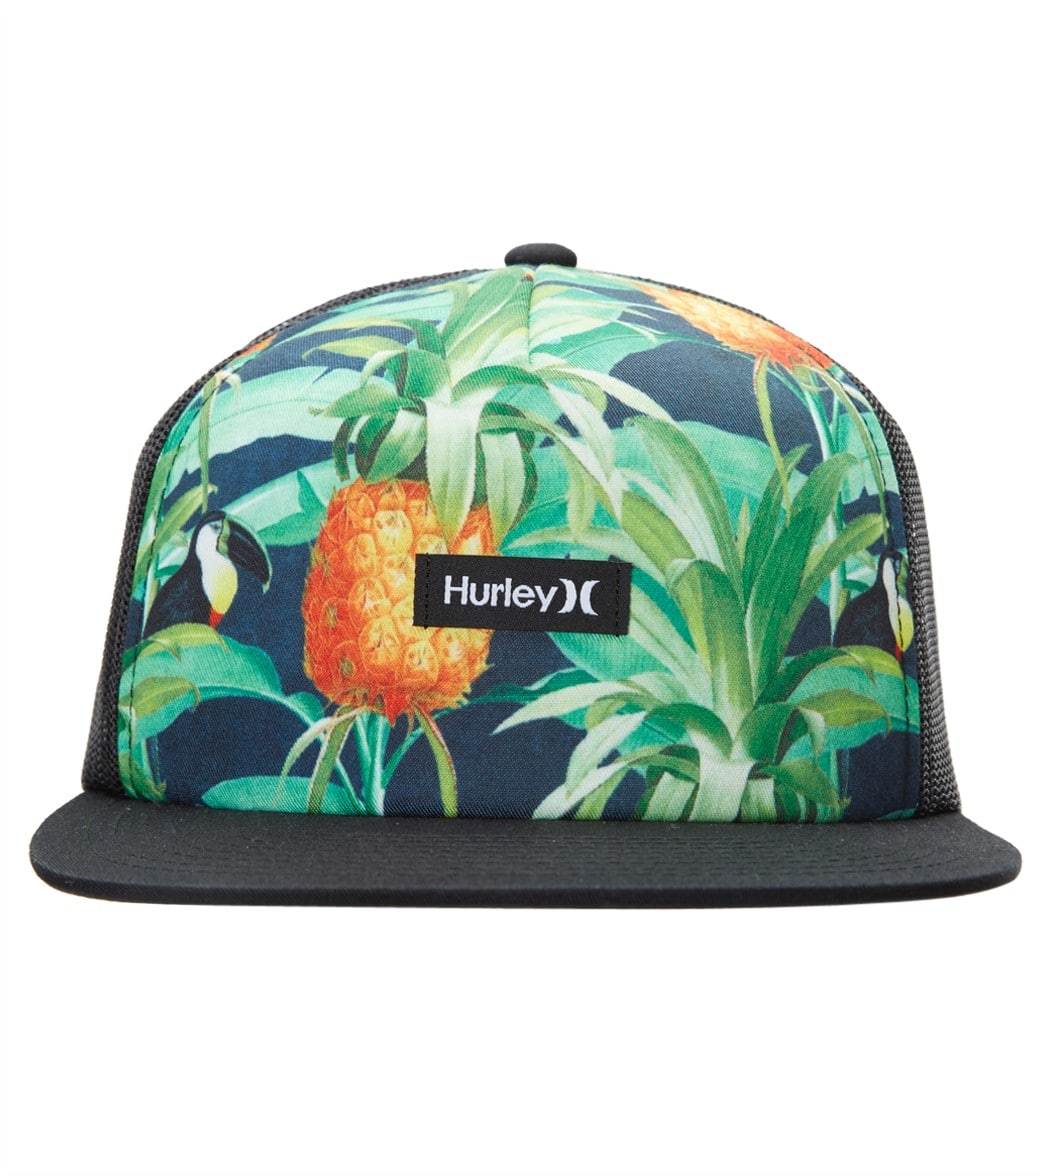 755a3ac70 inexpensive hurley floral hat 8ff64 b72d3